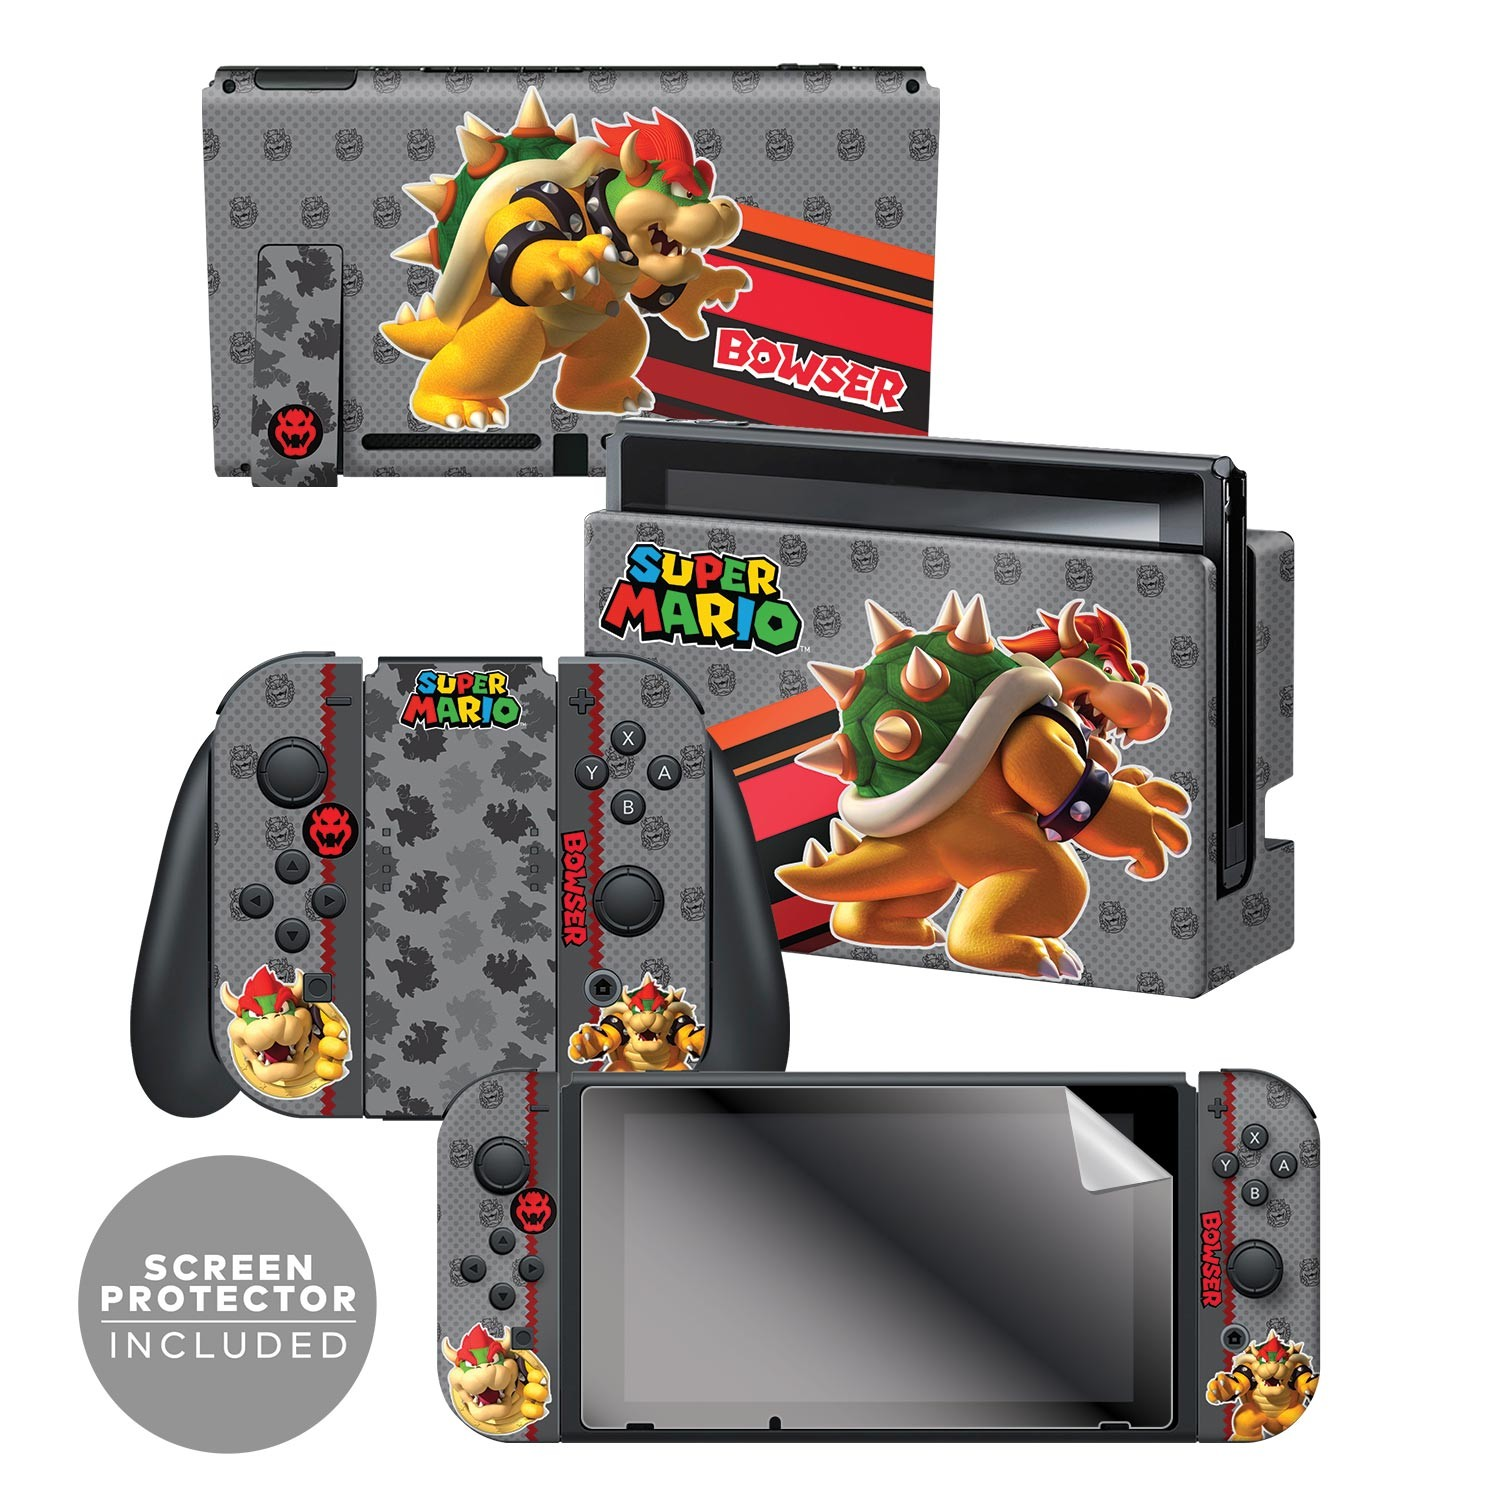 "Super Mario™ ""Bowser"" Nintendo Switch™ Console skin + Dock Skin + Joy-Con™ skin +  Joy-Con™ Grip Skin + Screen Protector Bundle Assortment, Officially Licensed by Nintendo"